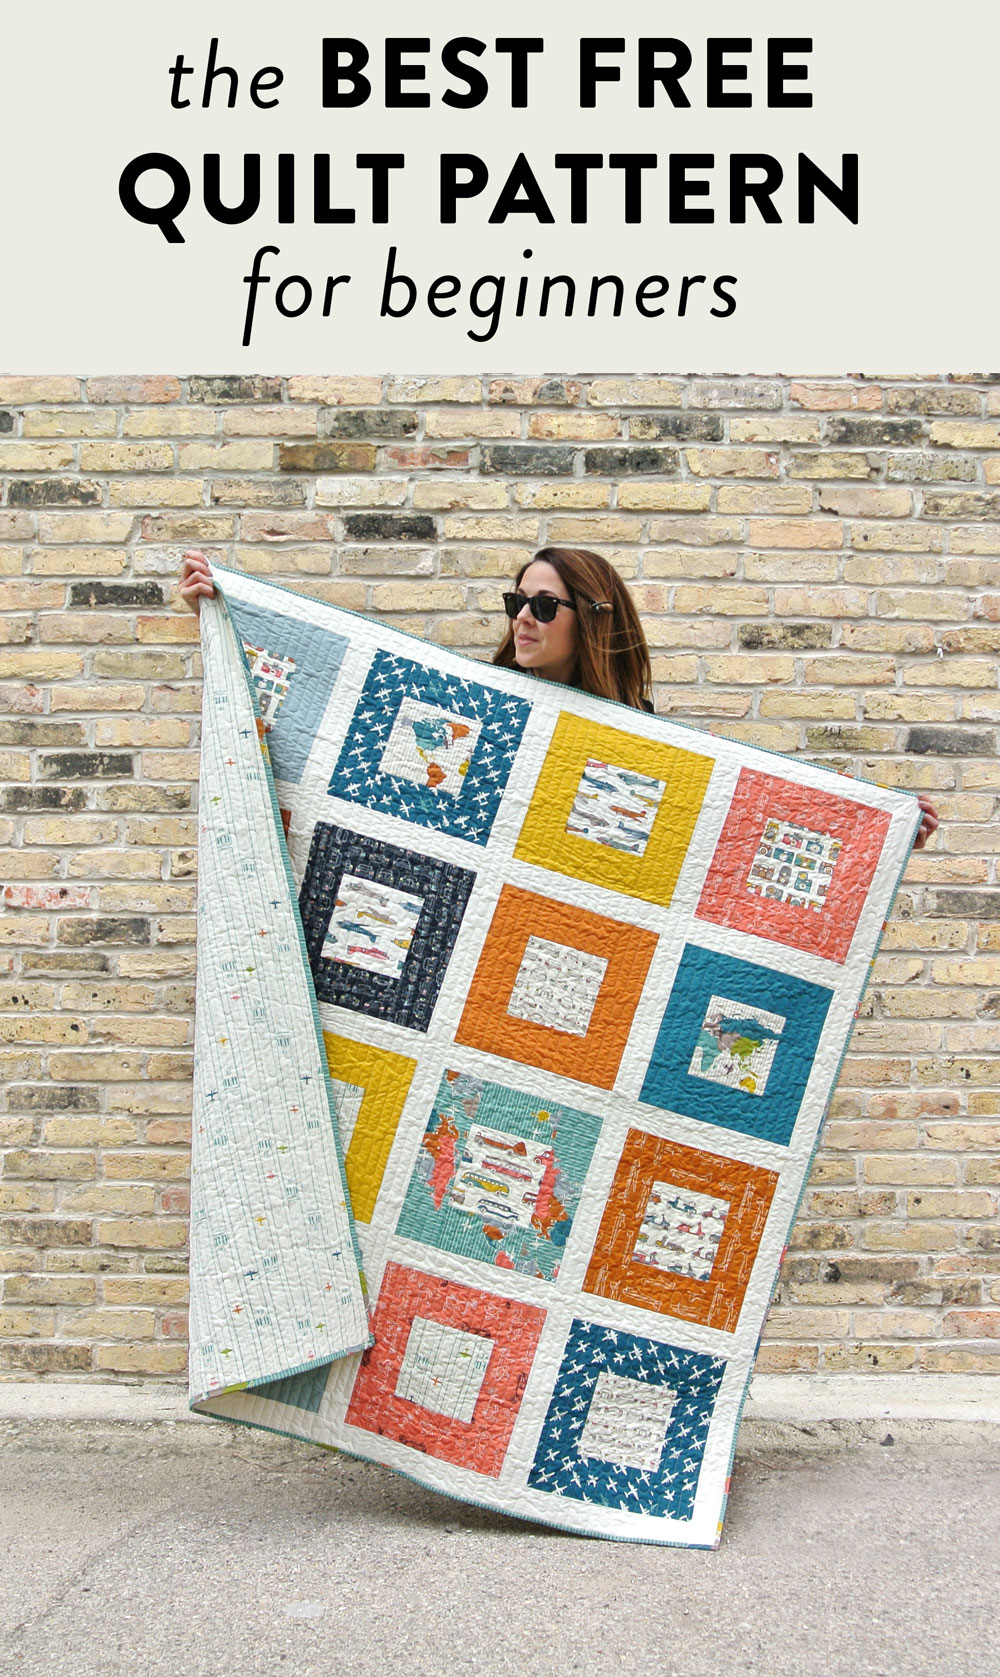 The Best Free Quilt Pattern for Beginners | Suzy Quilts https://suzyquilts.com/make-a-memory-quilt